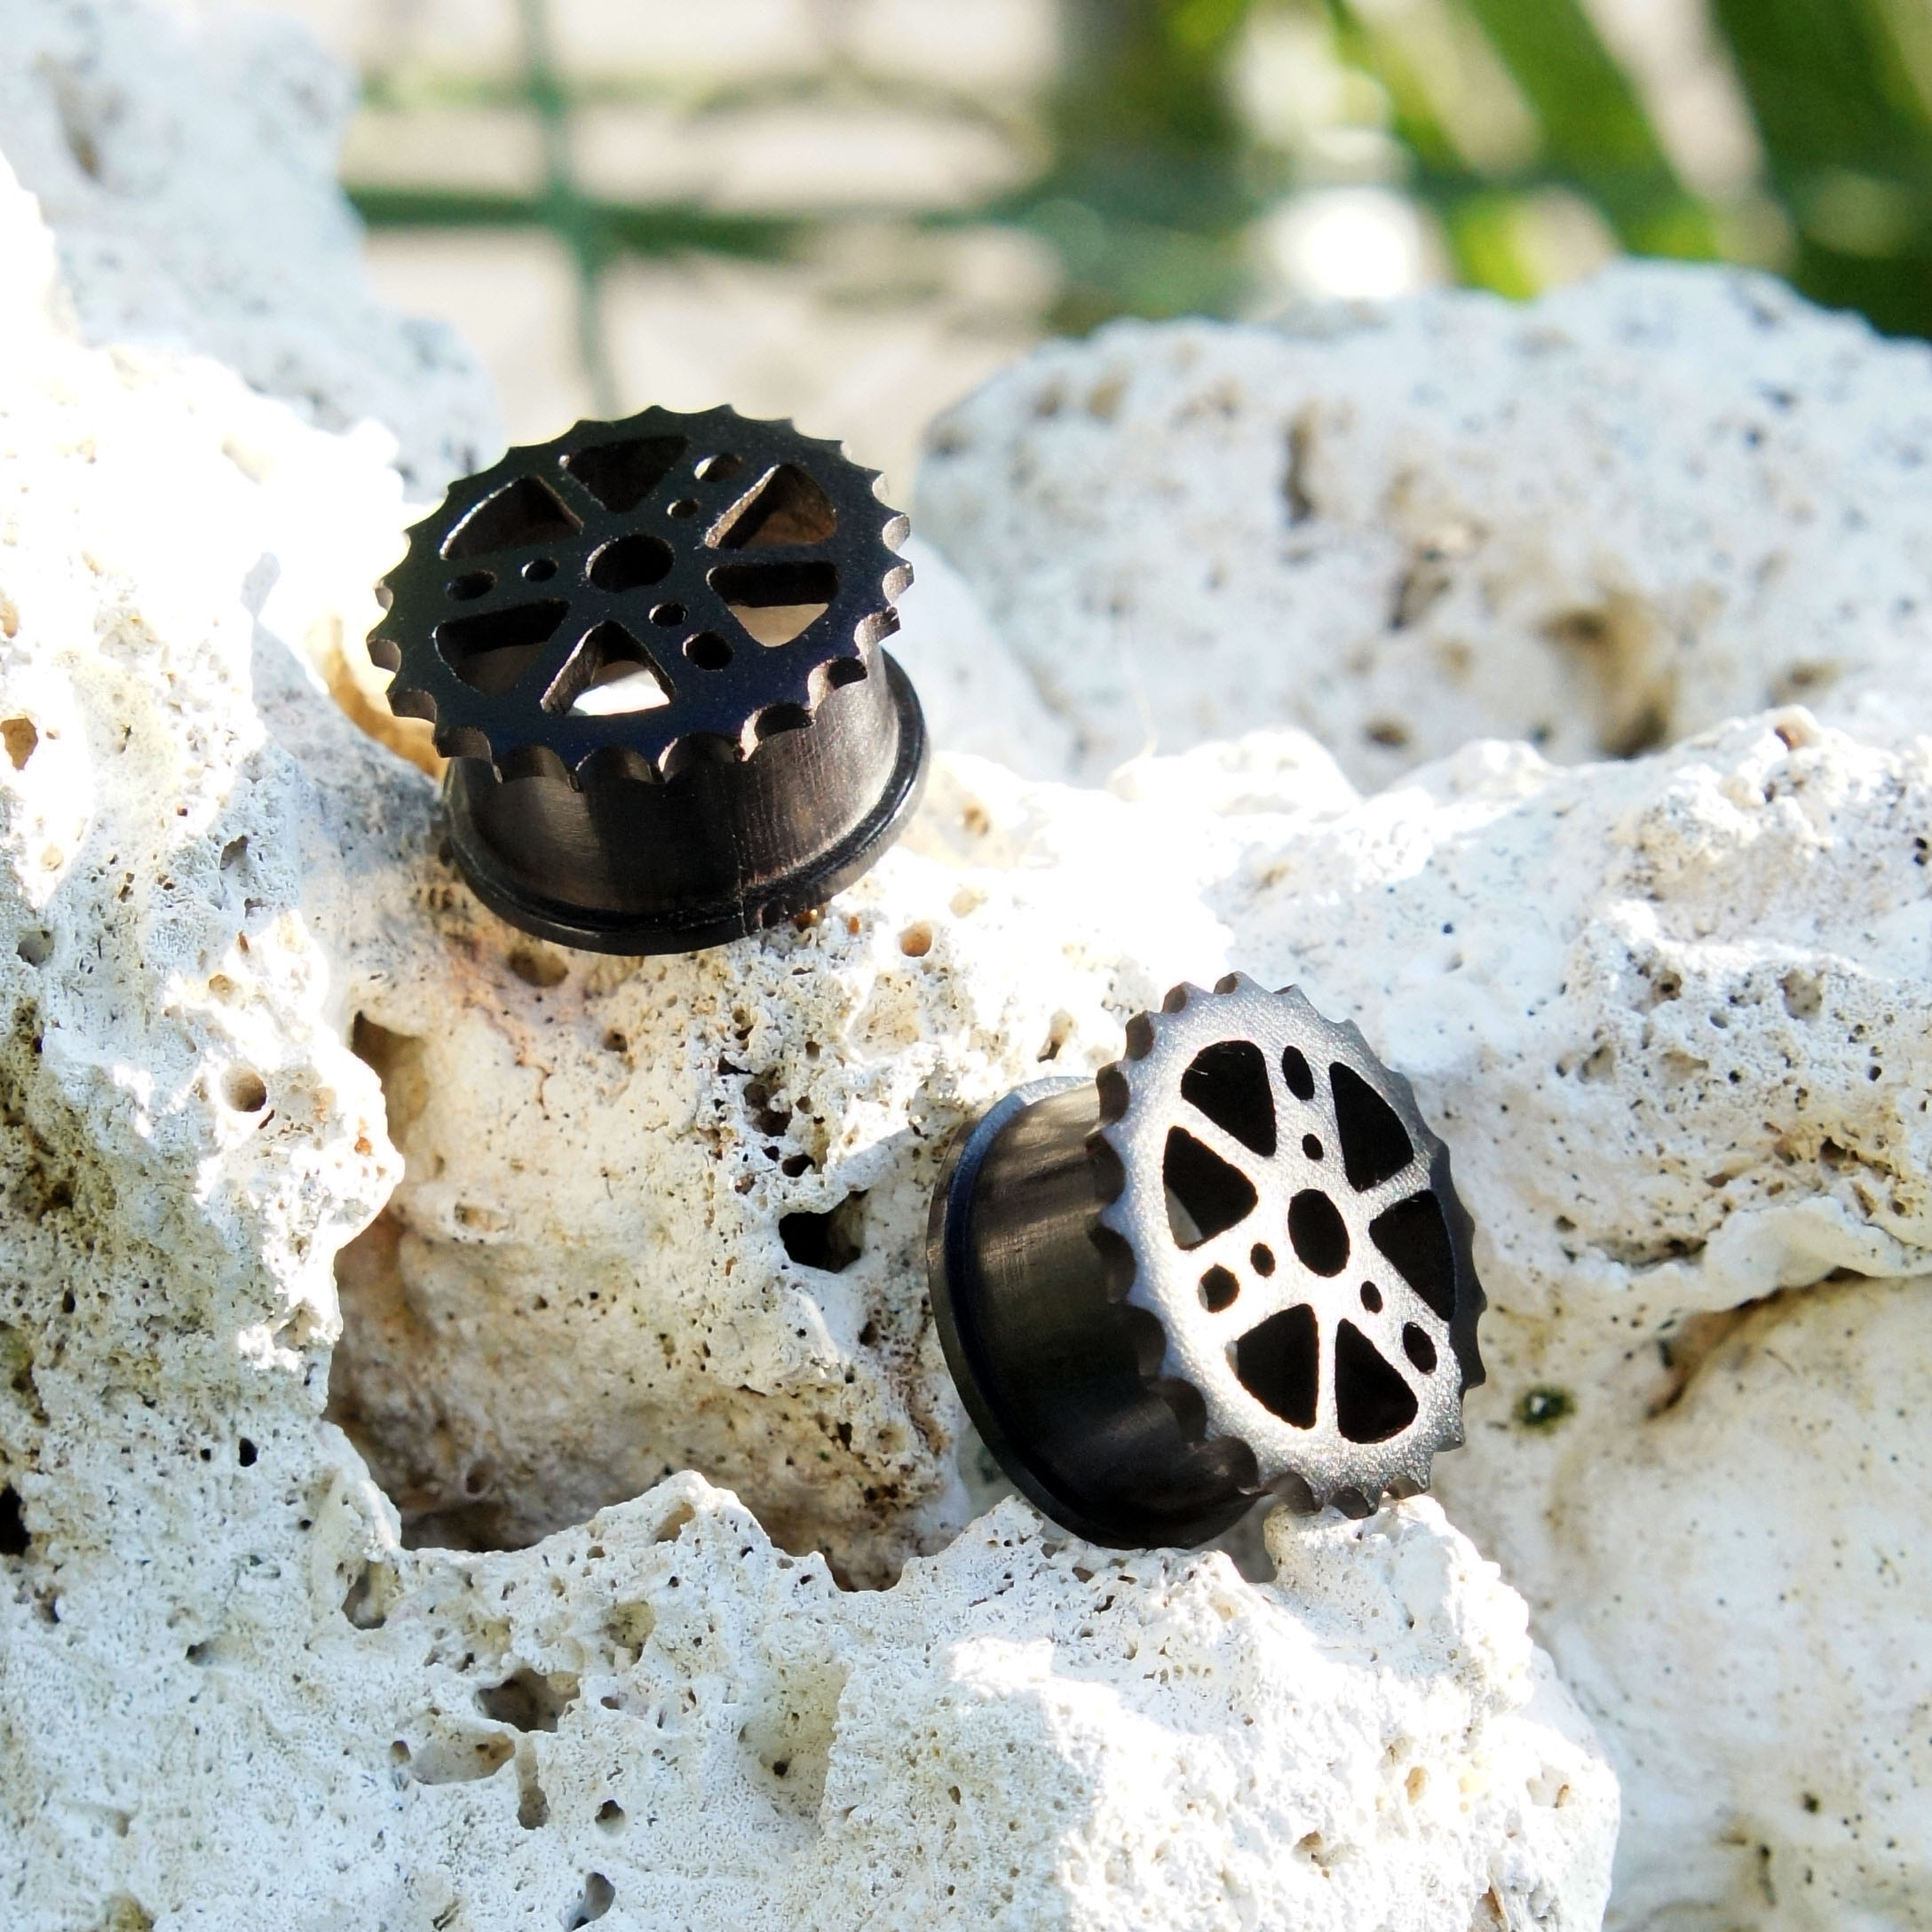 Ebony Wood Cogwheel Gear Tunnels